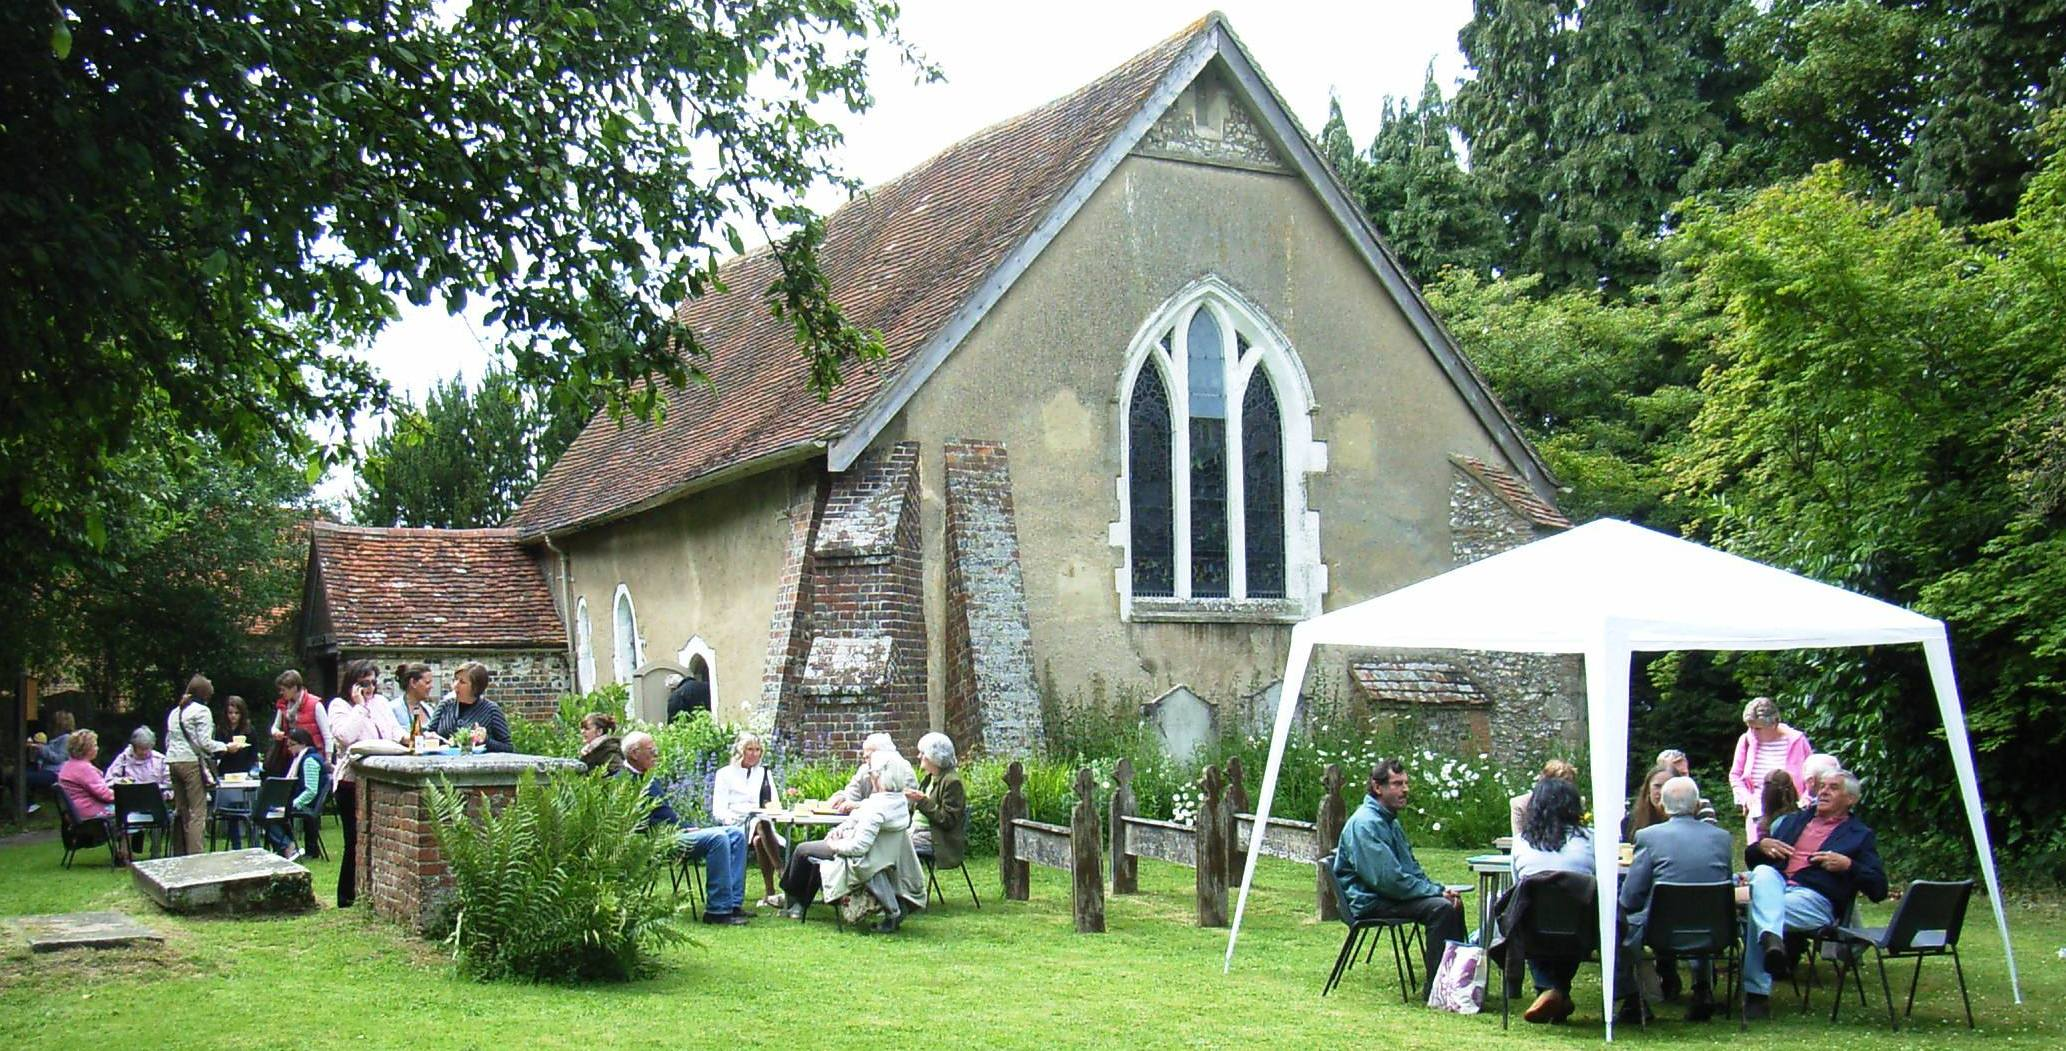 People seated outside the Old Church having cream teas